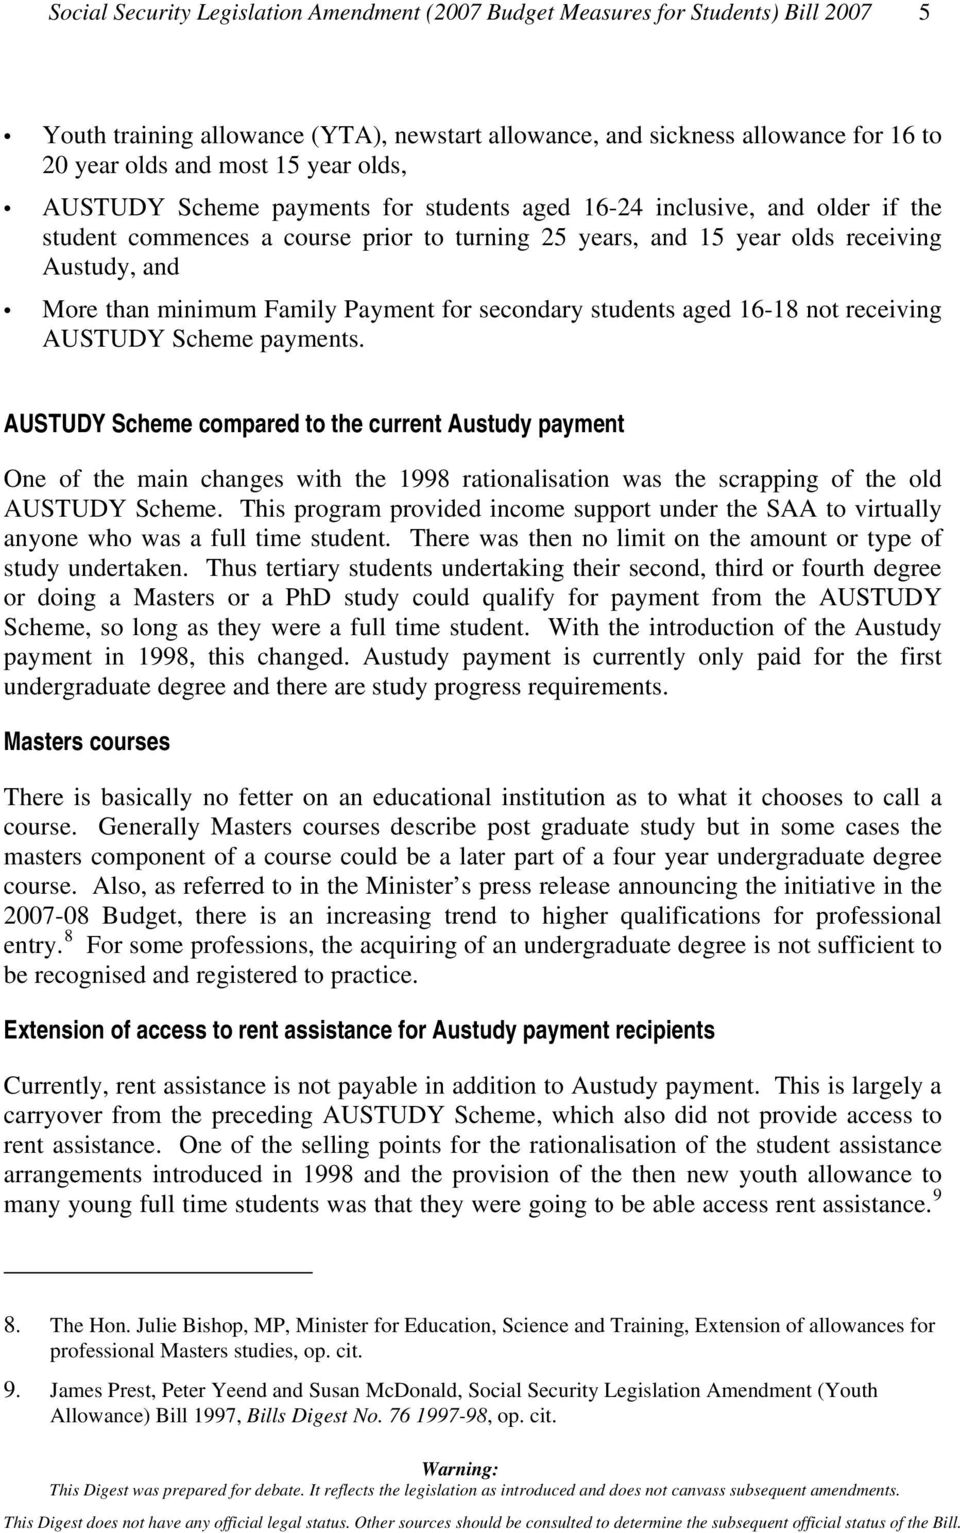 Family Payment for secondary students aged 16-18 not receiving AUSTUDY Scheme payments.